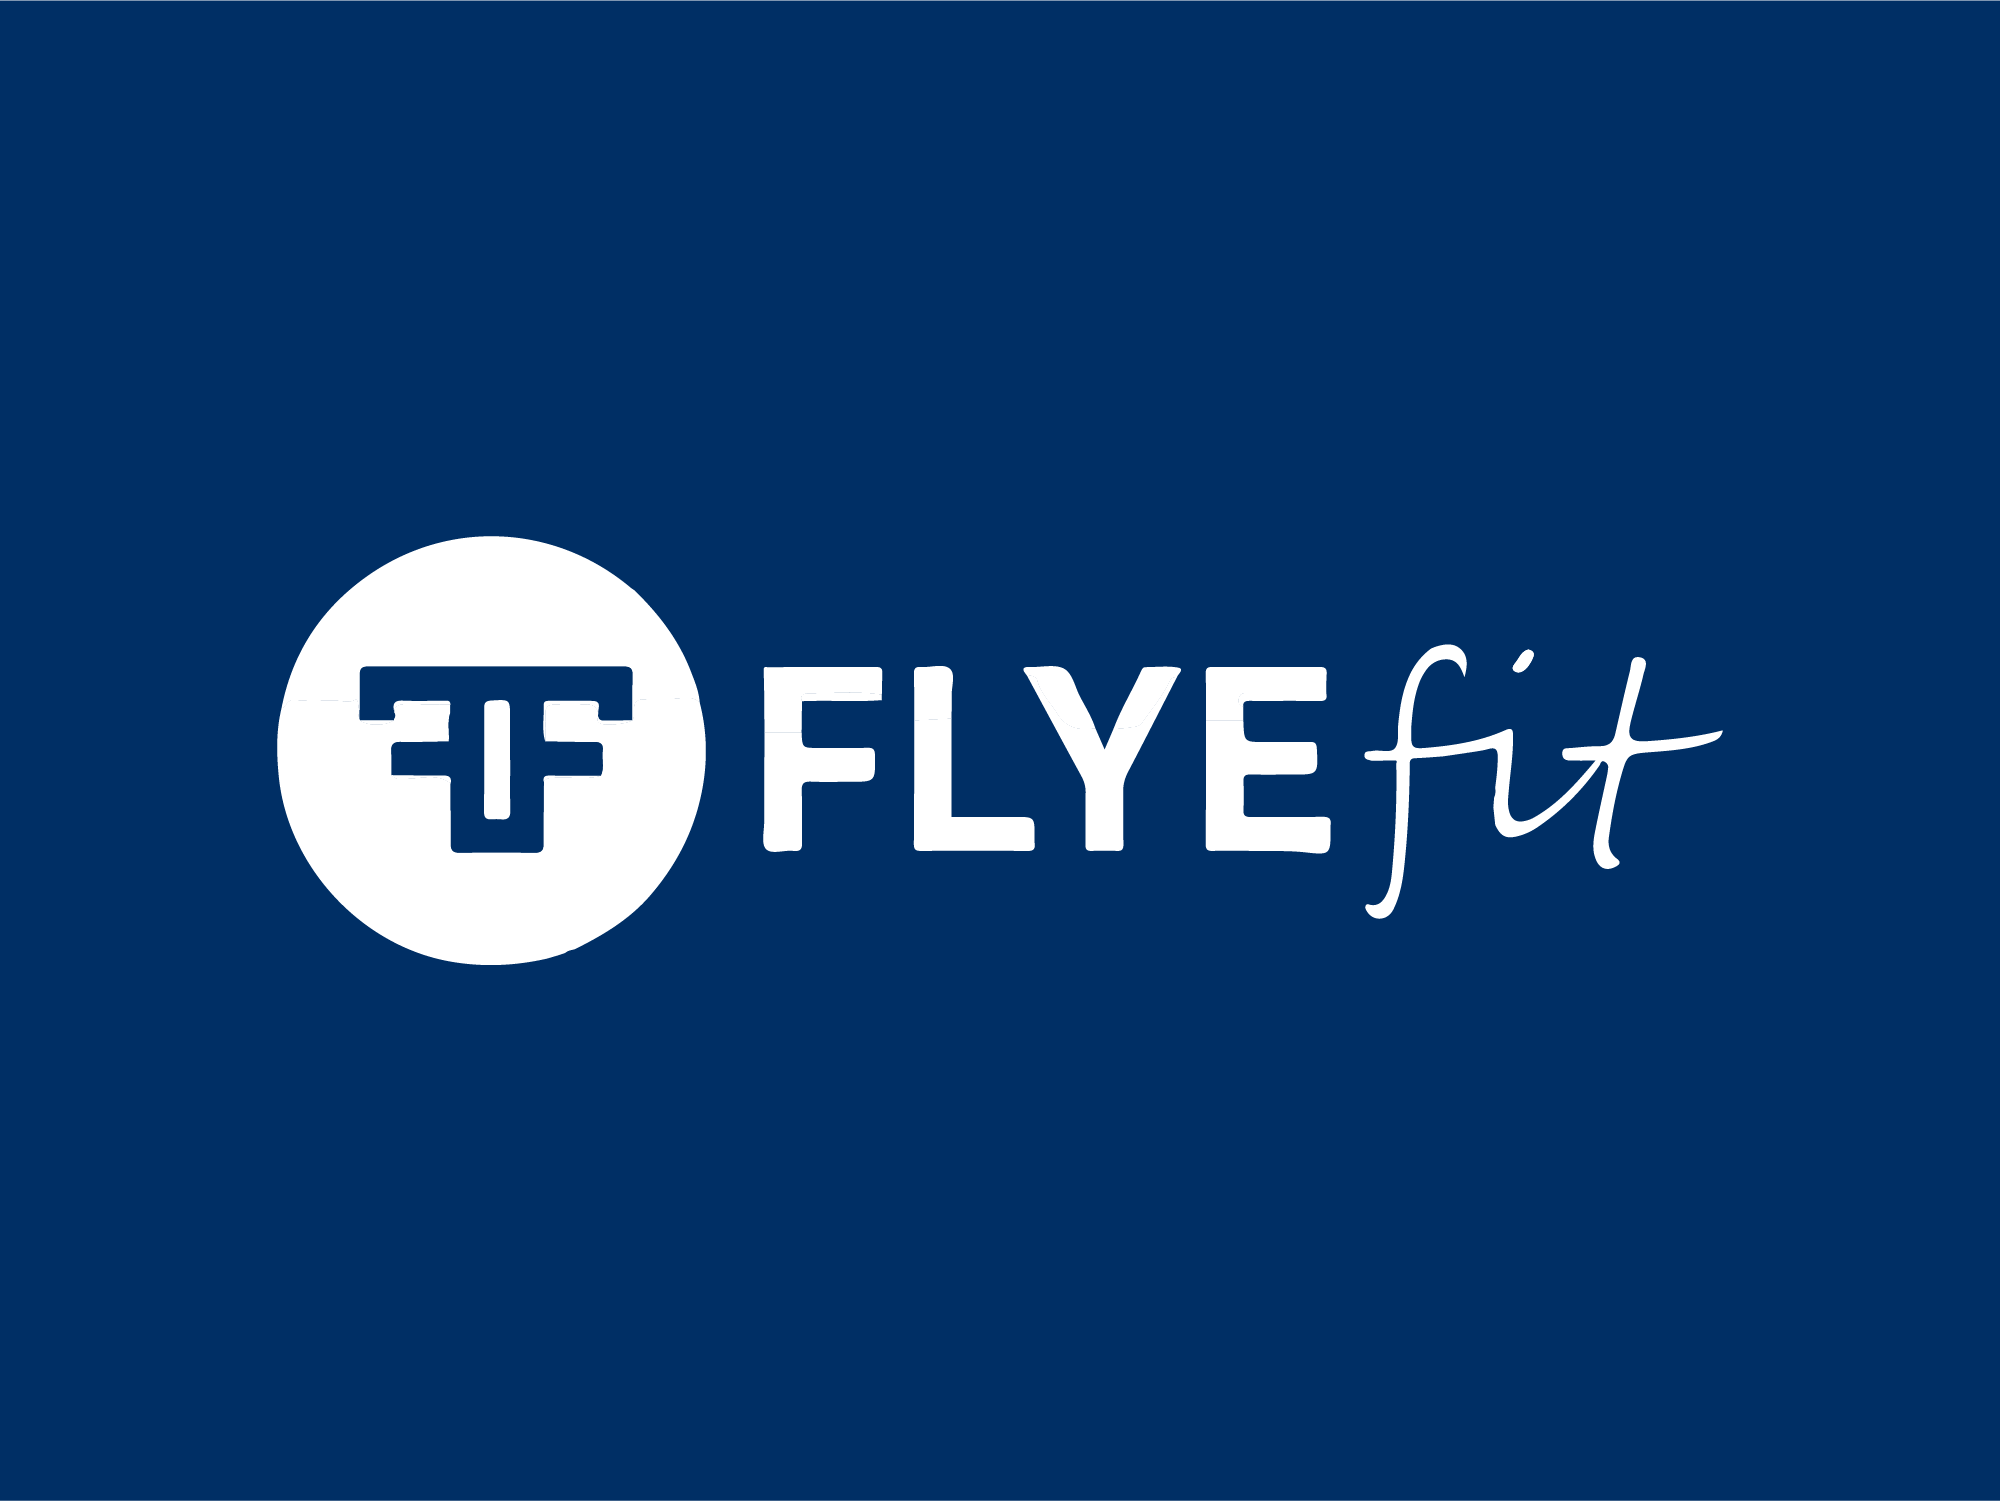 Flyefit - Fundraising and strategic advice for lo-cost gym chain